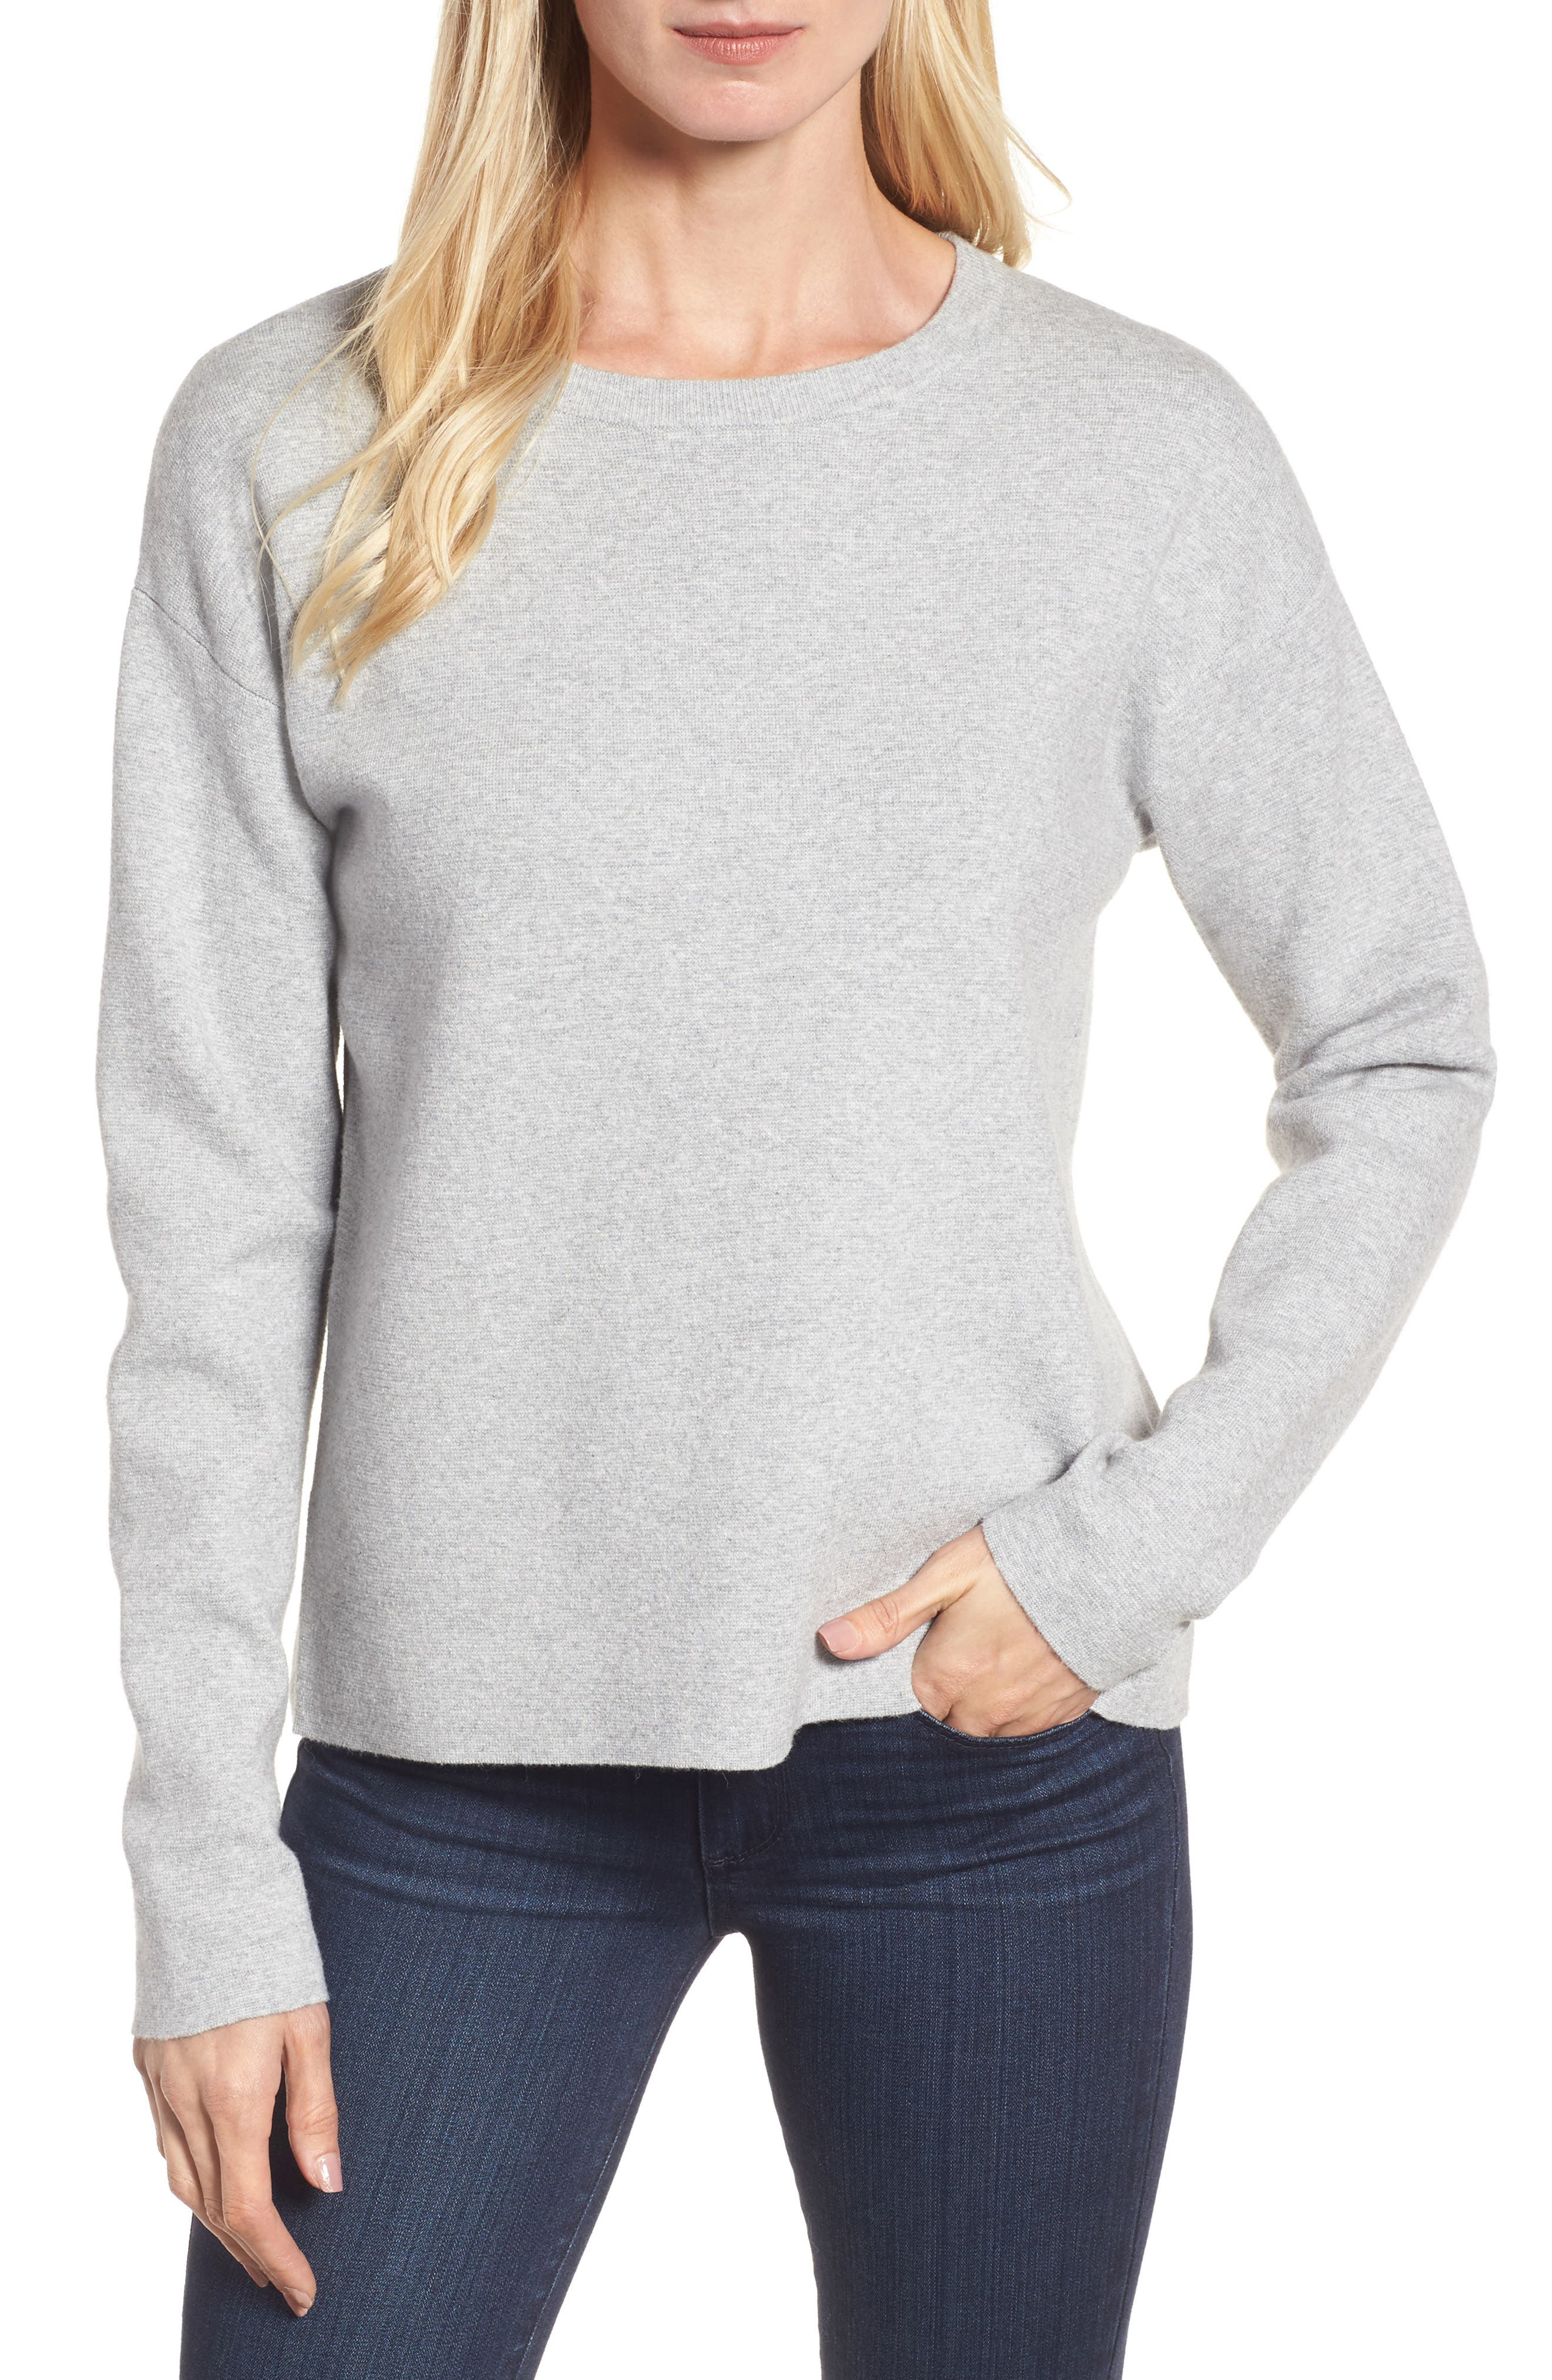 Alternate Image 1 Selected - Halogen® Tie Back Sweater (Regular & Petite)